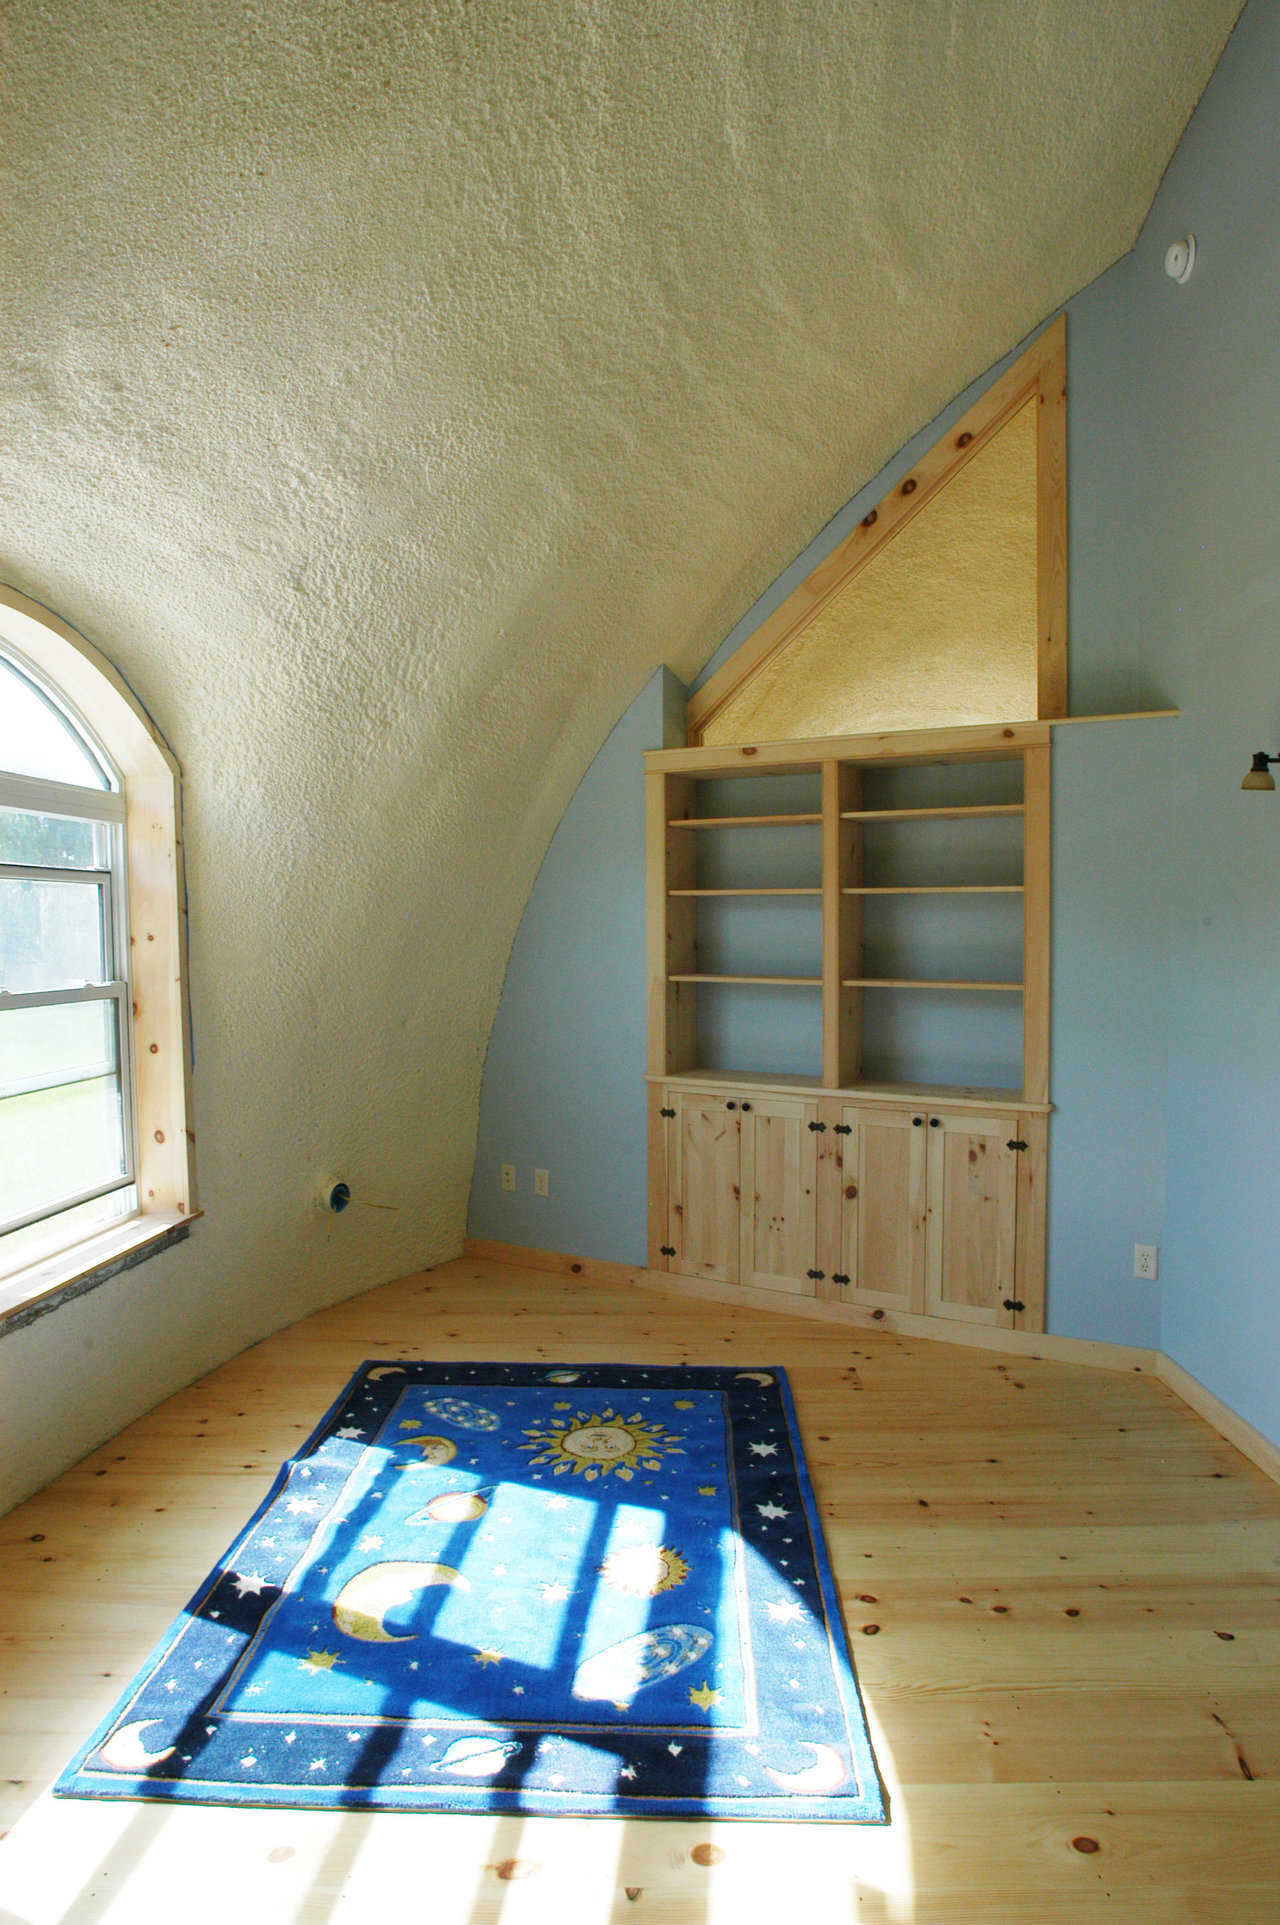 Child's bedroom with east window